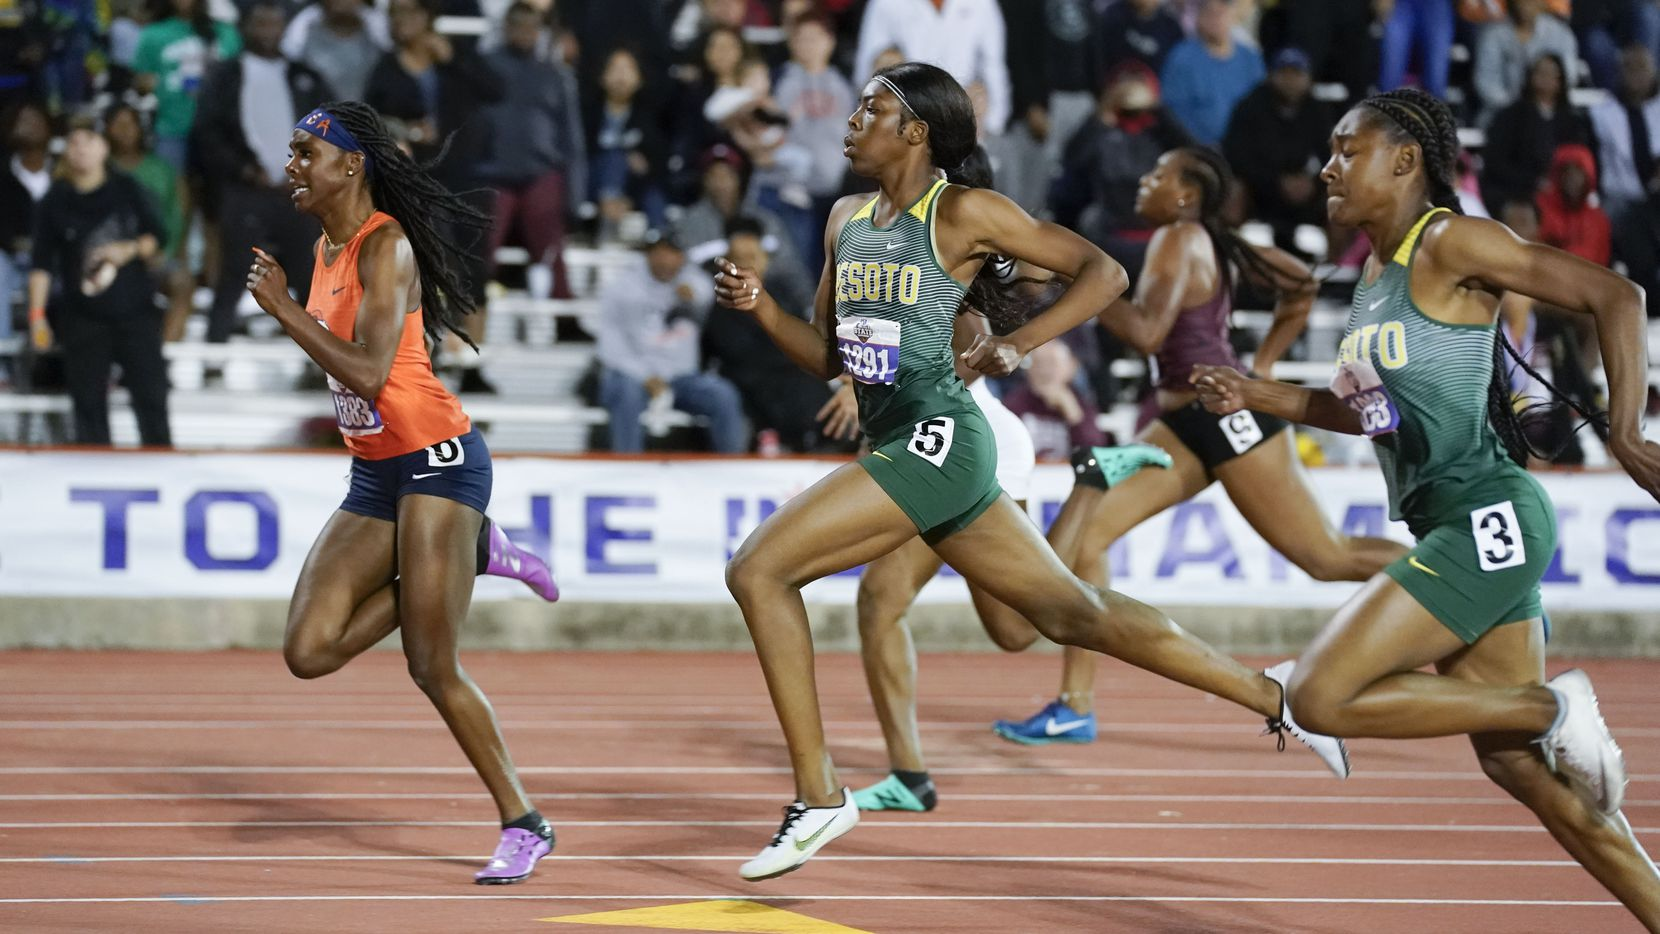 The DeSoto girls, pictured at the 2019 UIL state track meet, will be going for their fifth consecutive Class 6A team state championship this year at Mike A. Myers Stadium in Austin.